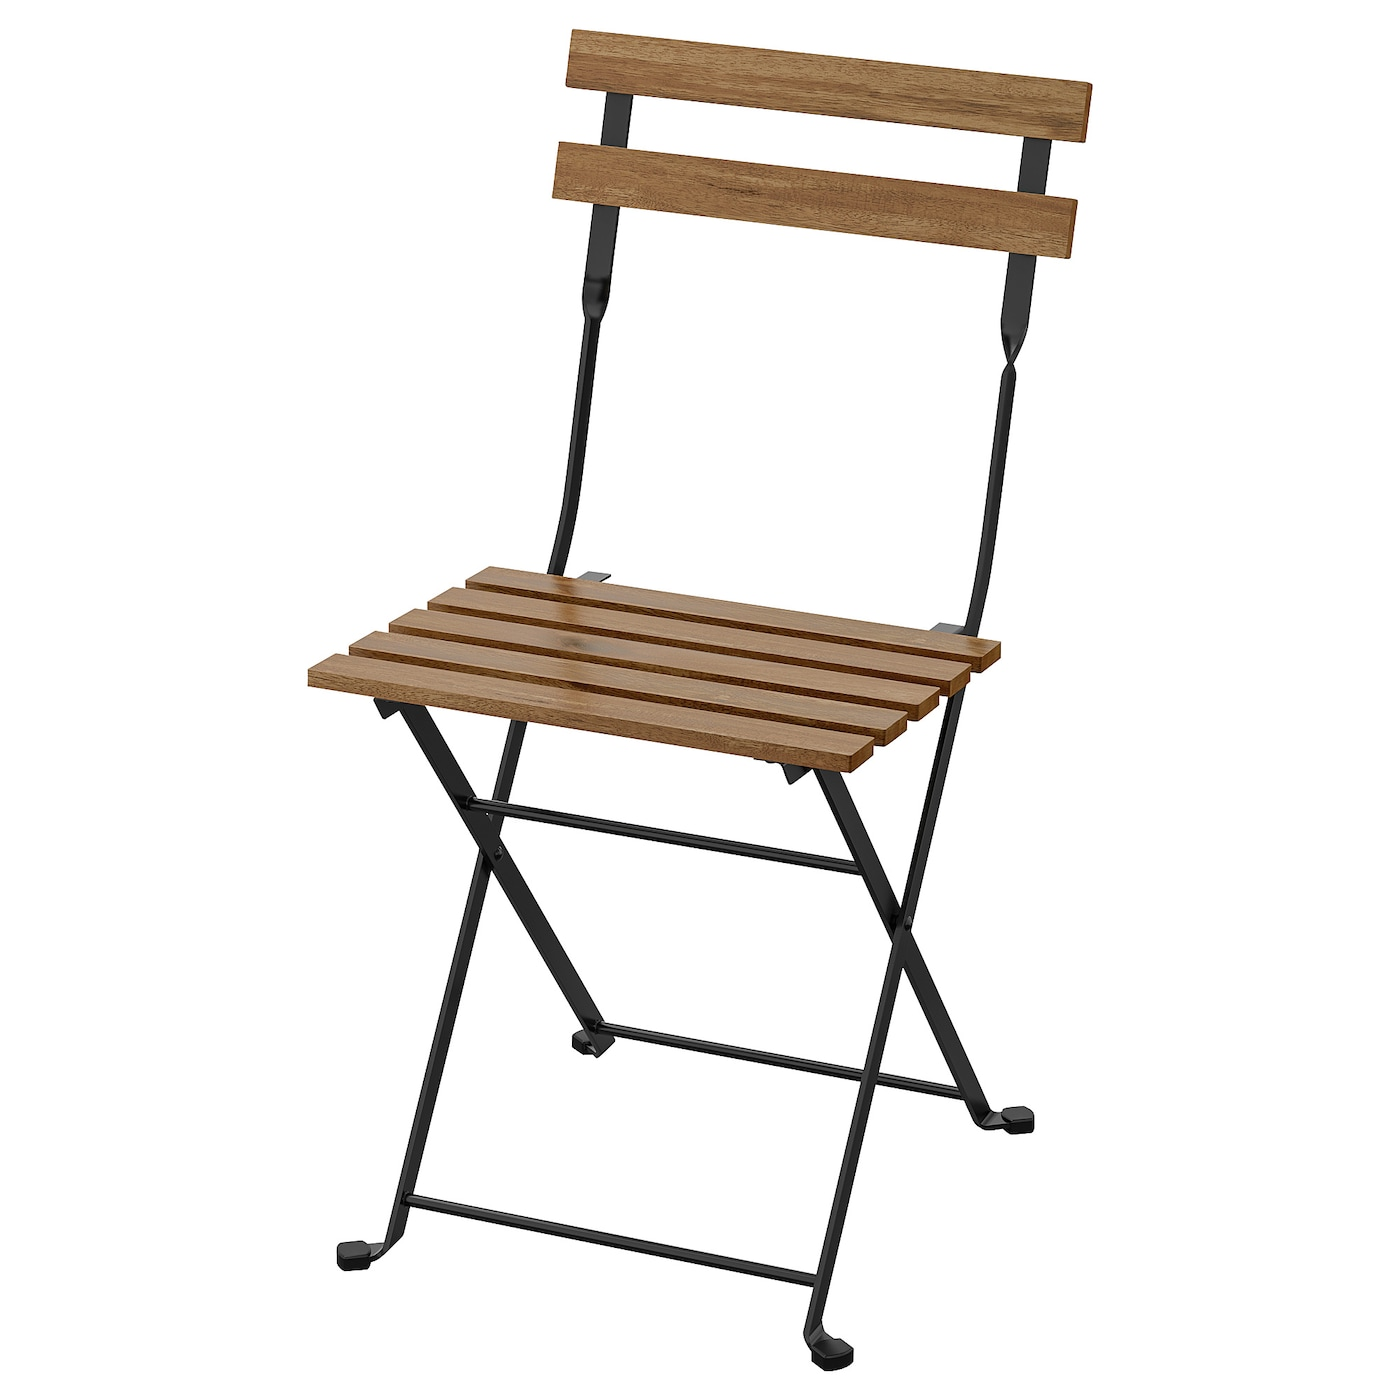 TÄRNÖ Chair, outdoor - foldable black/light brown stained